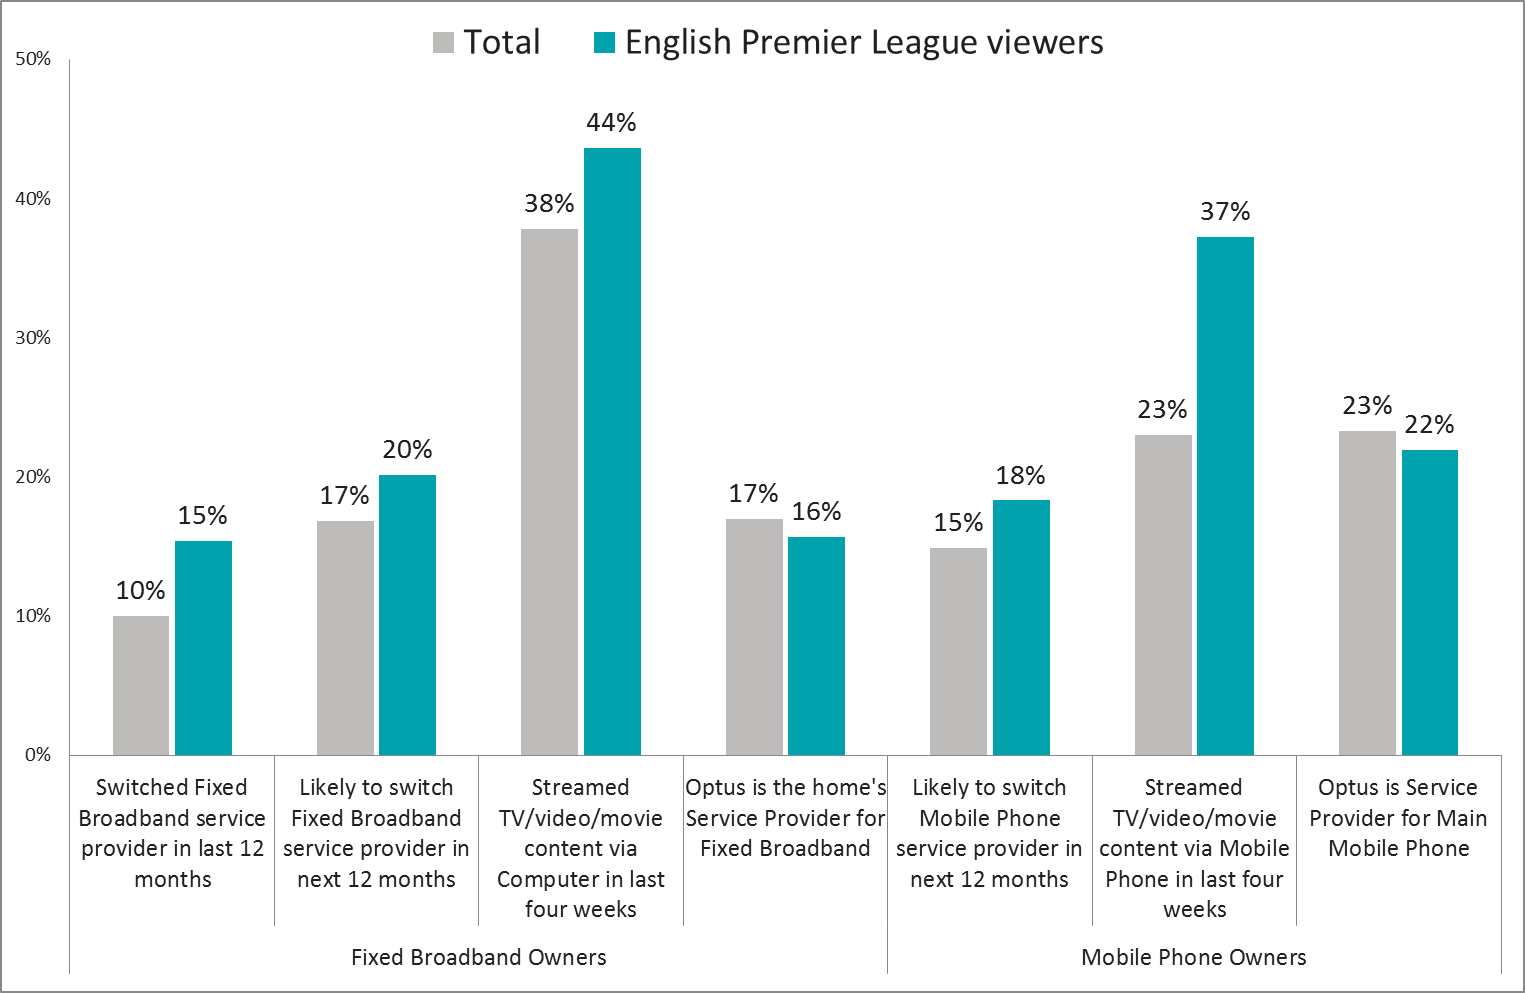 Are Australia's 1 7 million English Premier League viewers